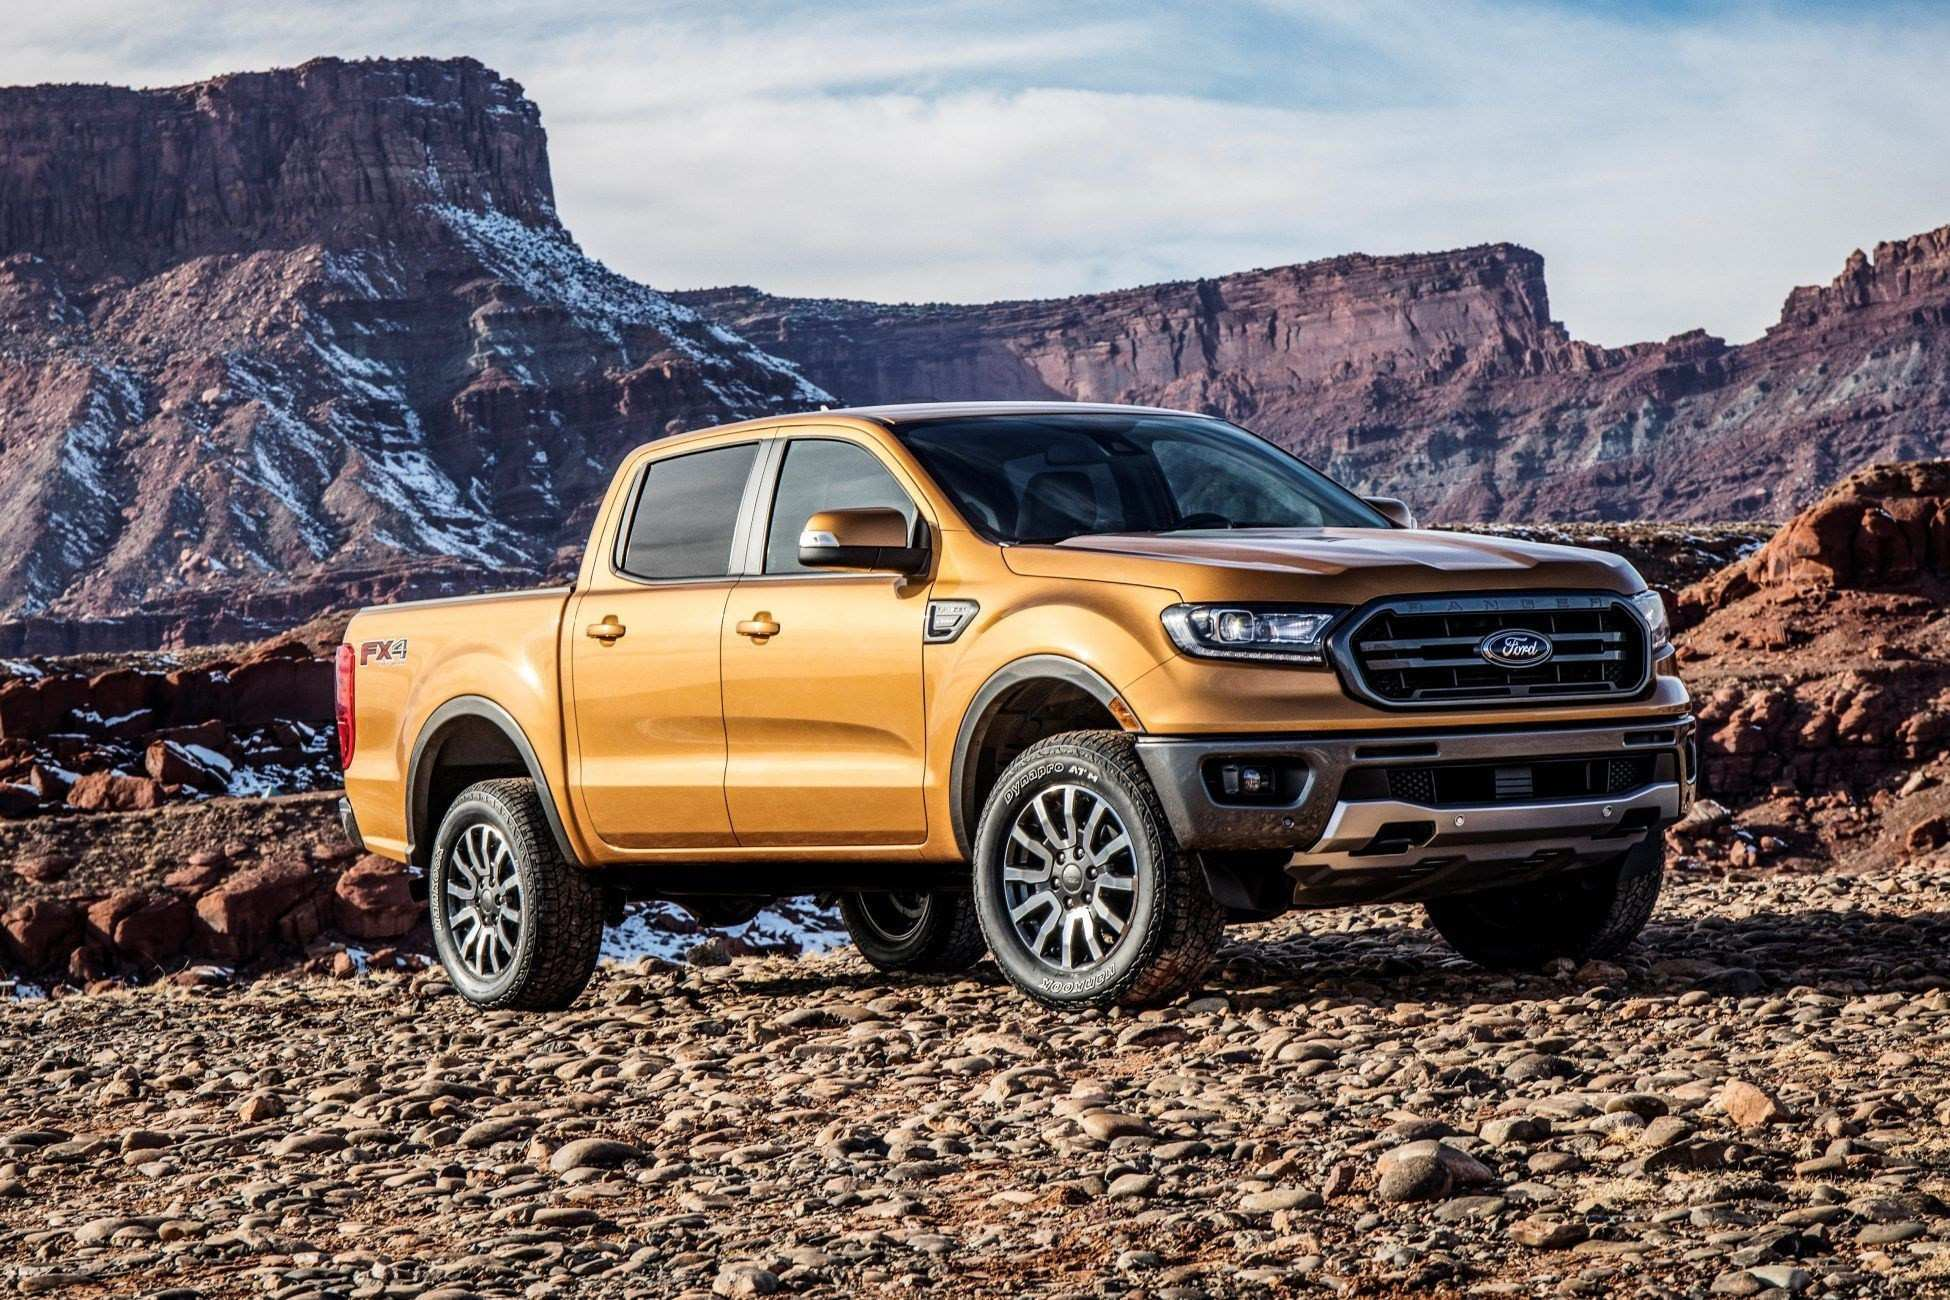 26 New Subaru Pickup Truck 2019 Rumors